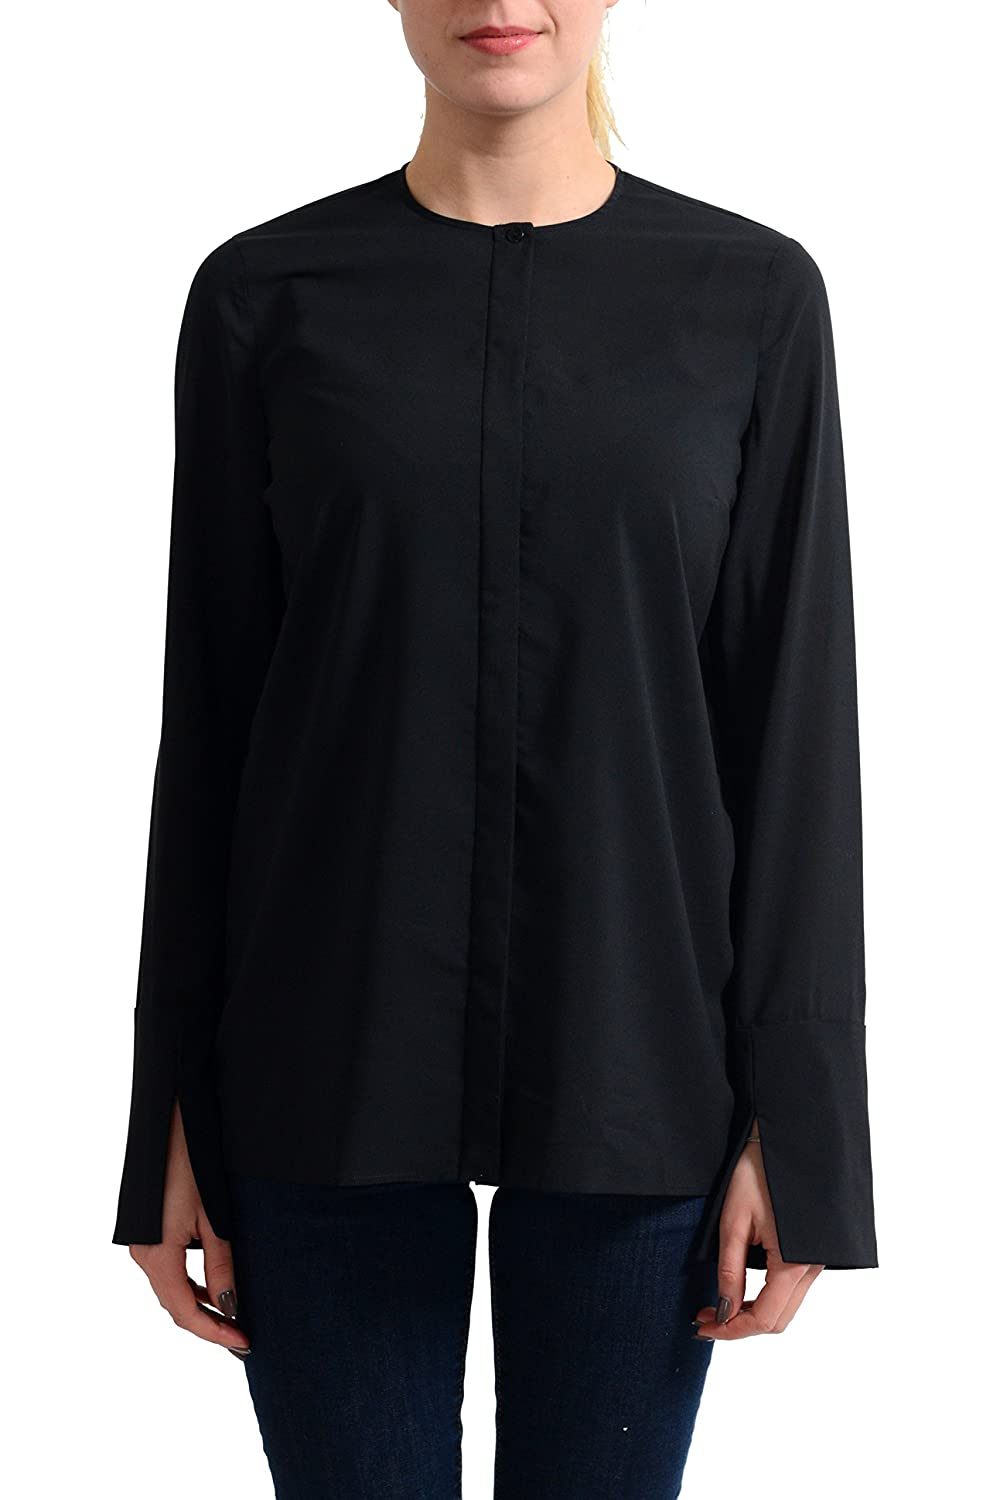 Just Cavalli Women's Black Long Sleeve Blouse Top US S IT 40